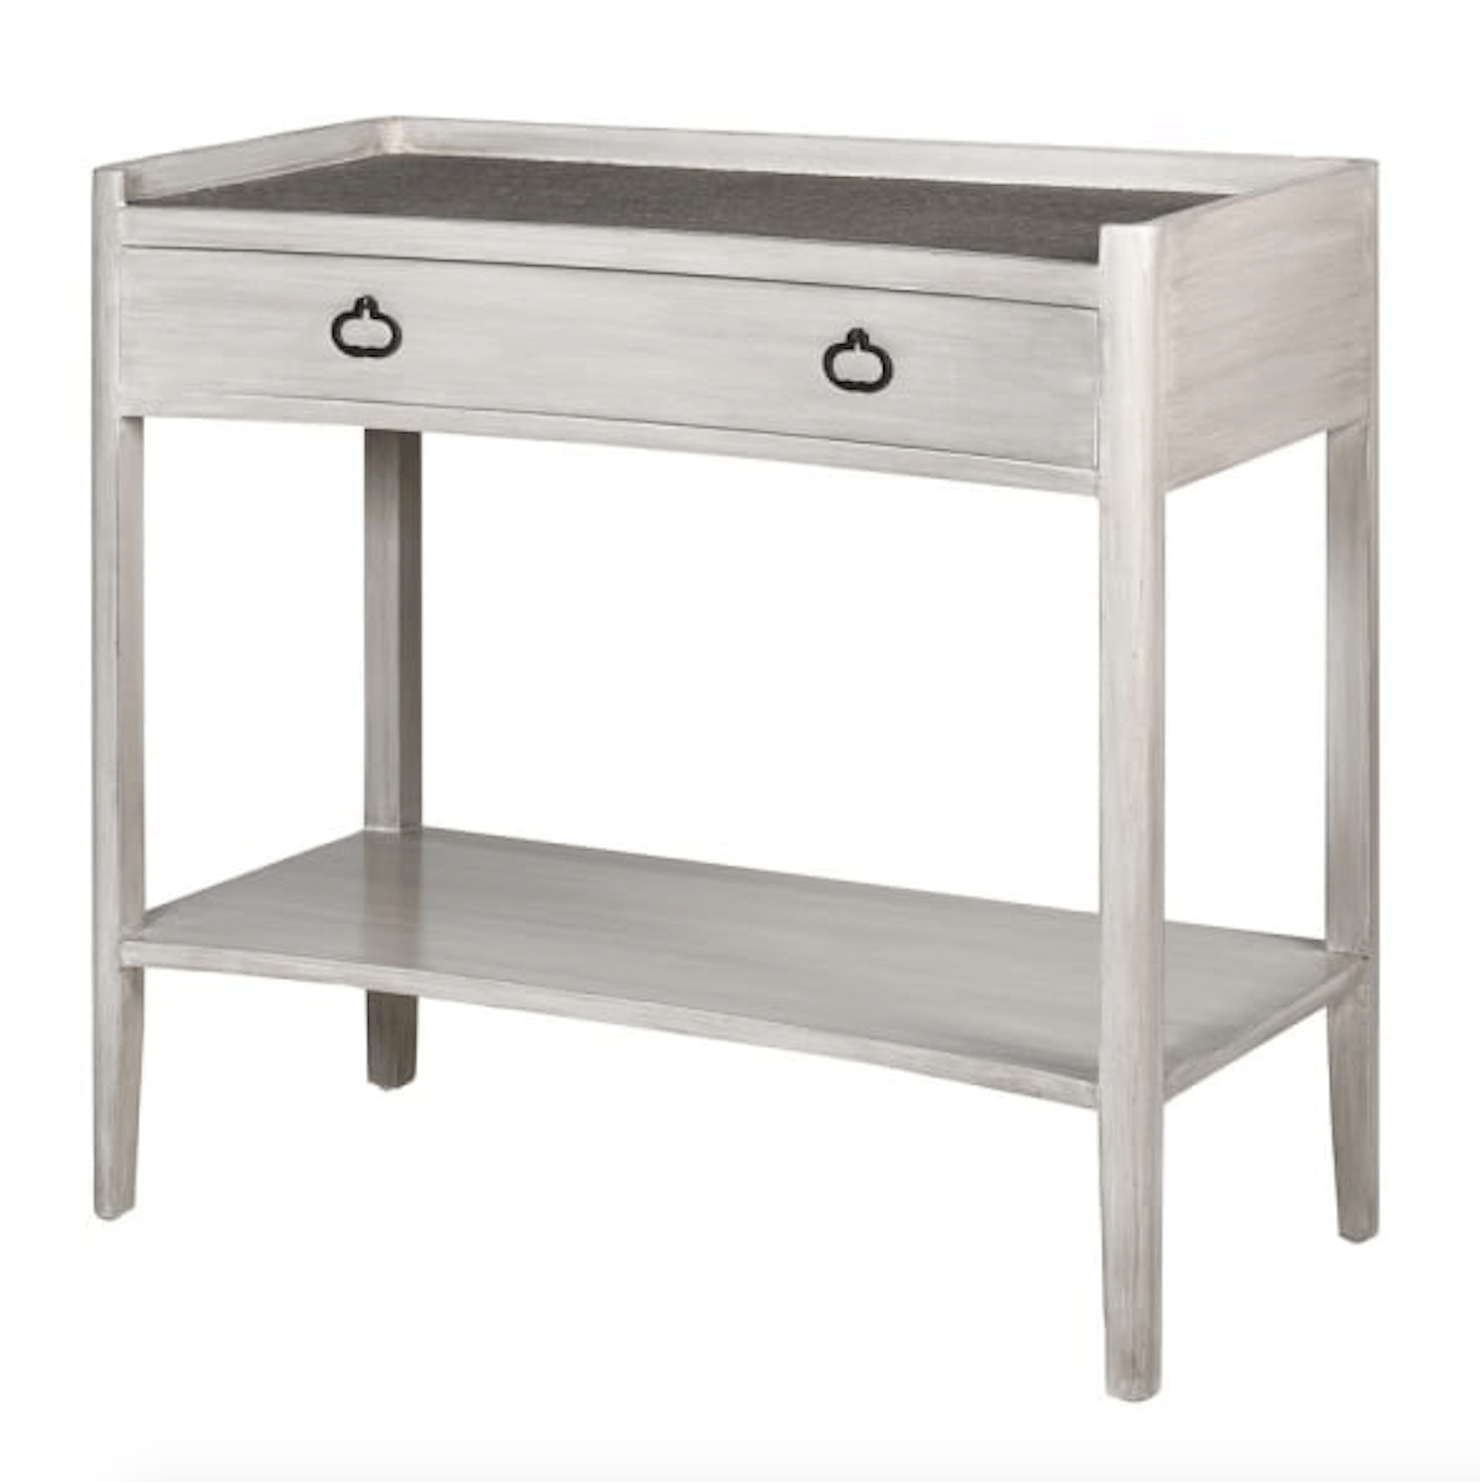 Lucerne Console Table - Barnbury